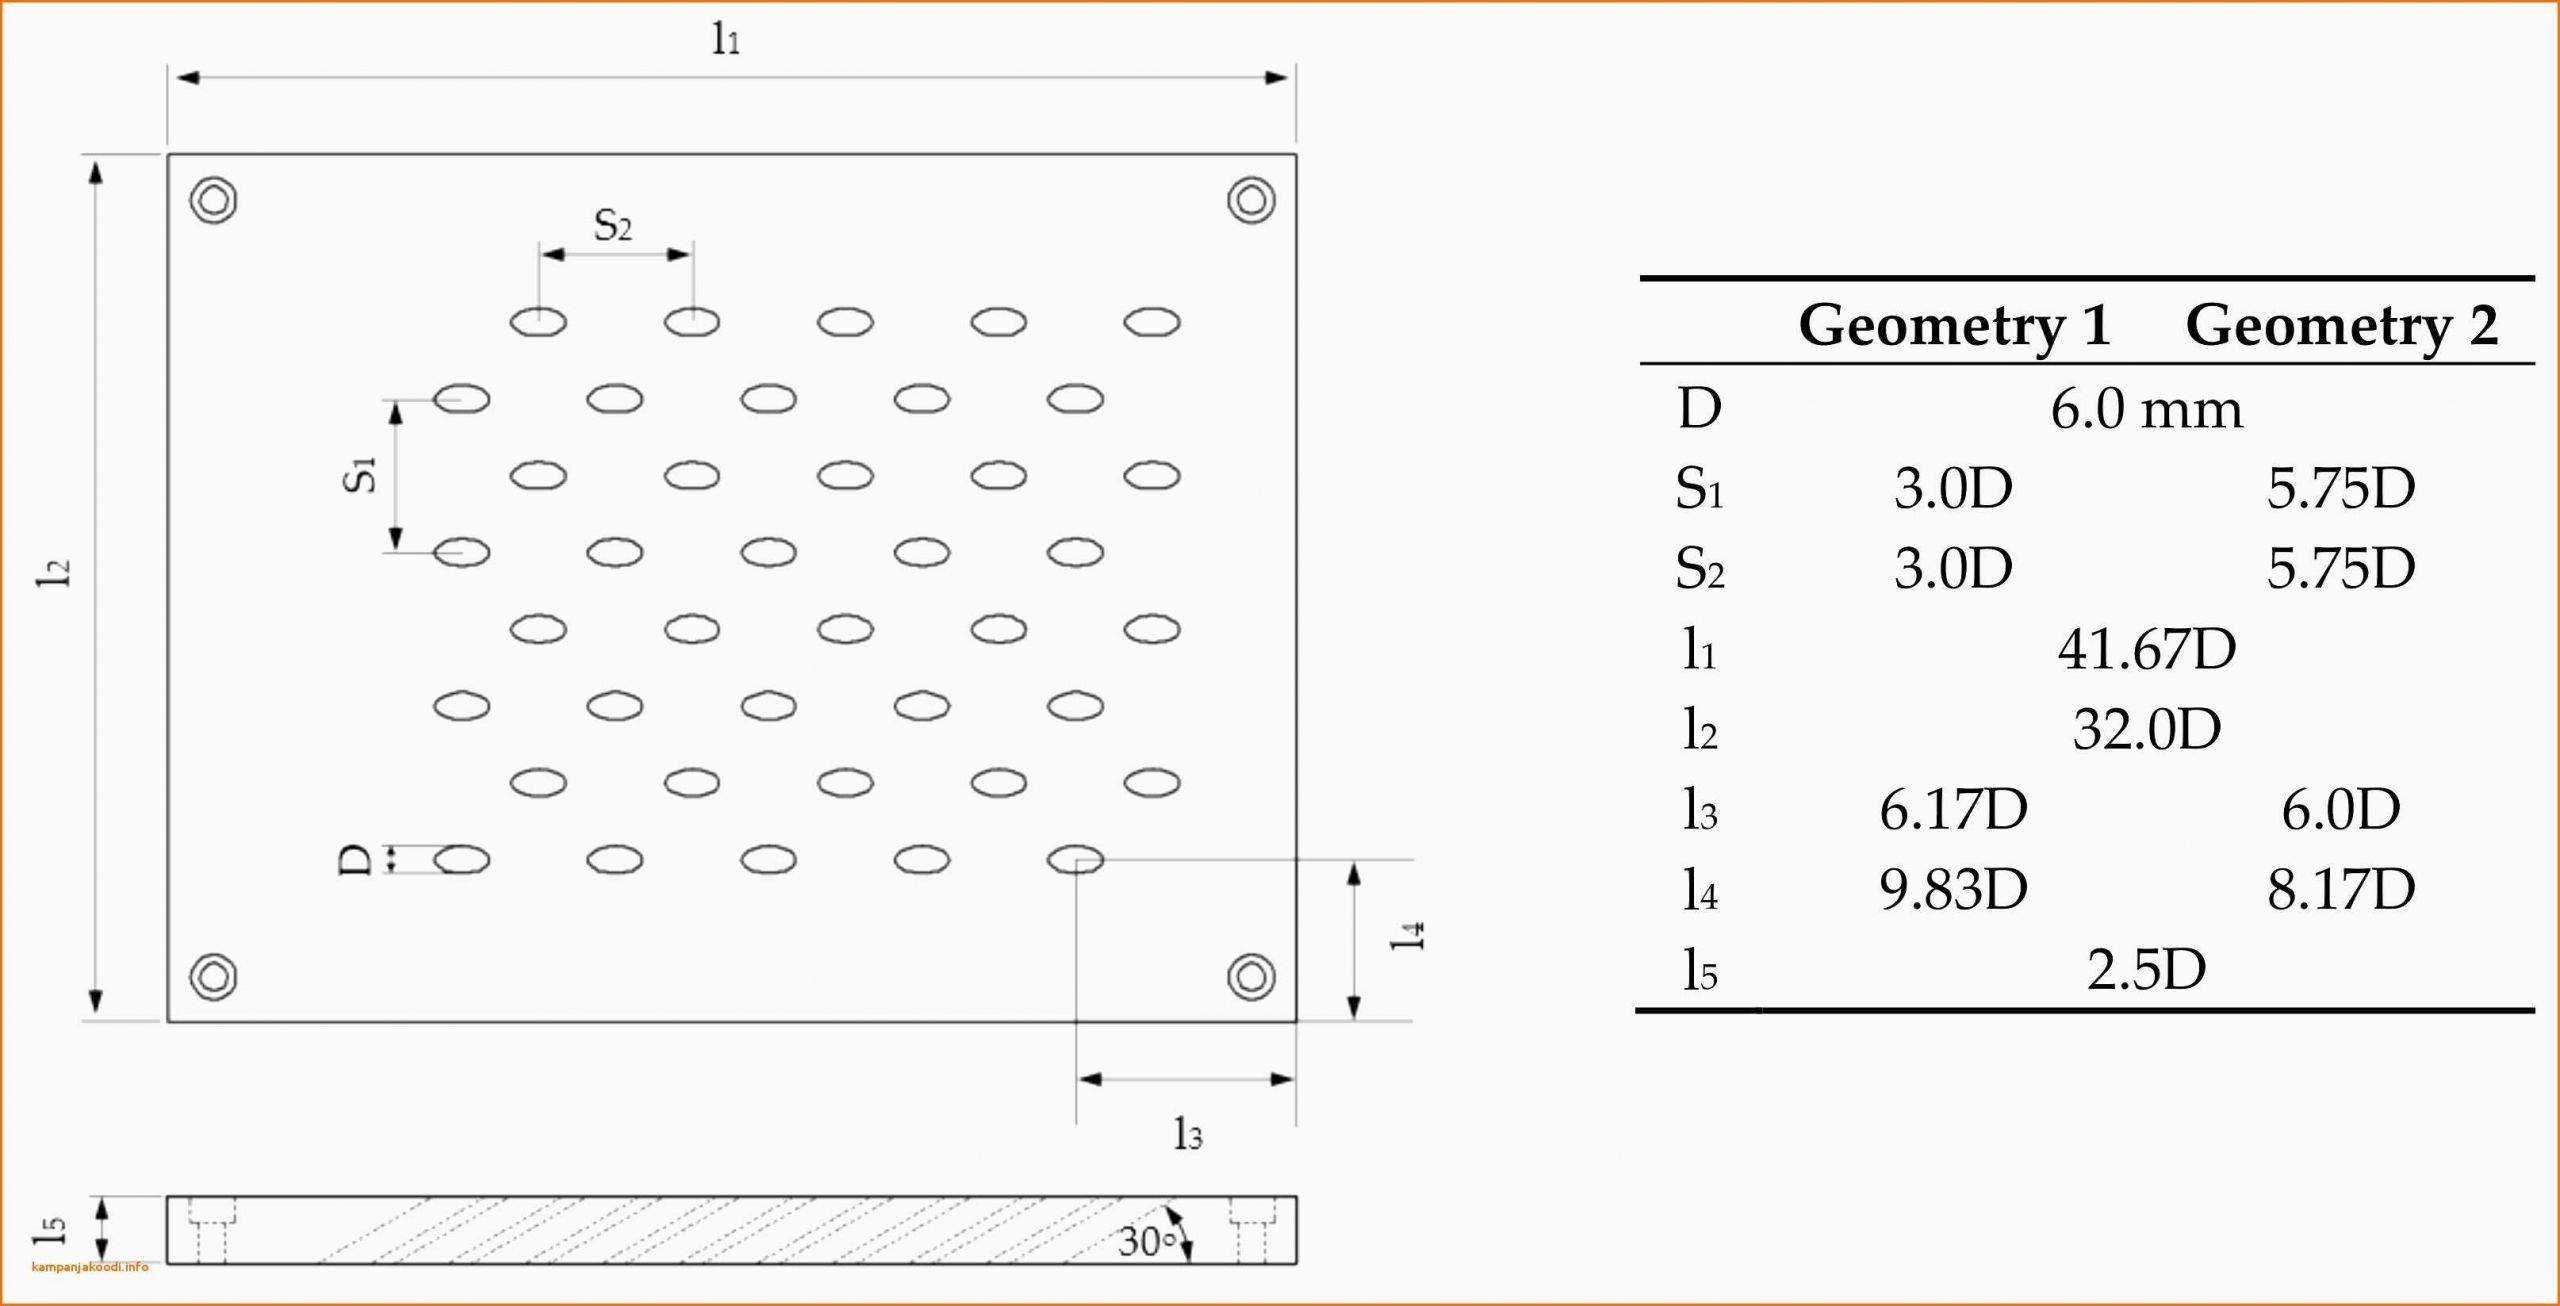 Geometry Template Printable 5 Sample Grade 5 Geometry Apocalomegaproductions